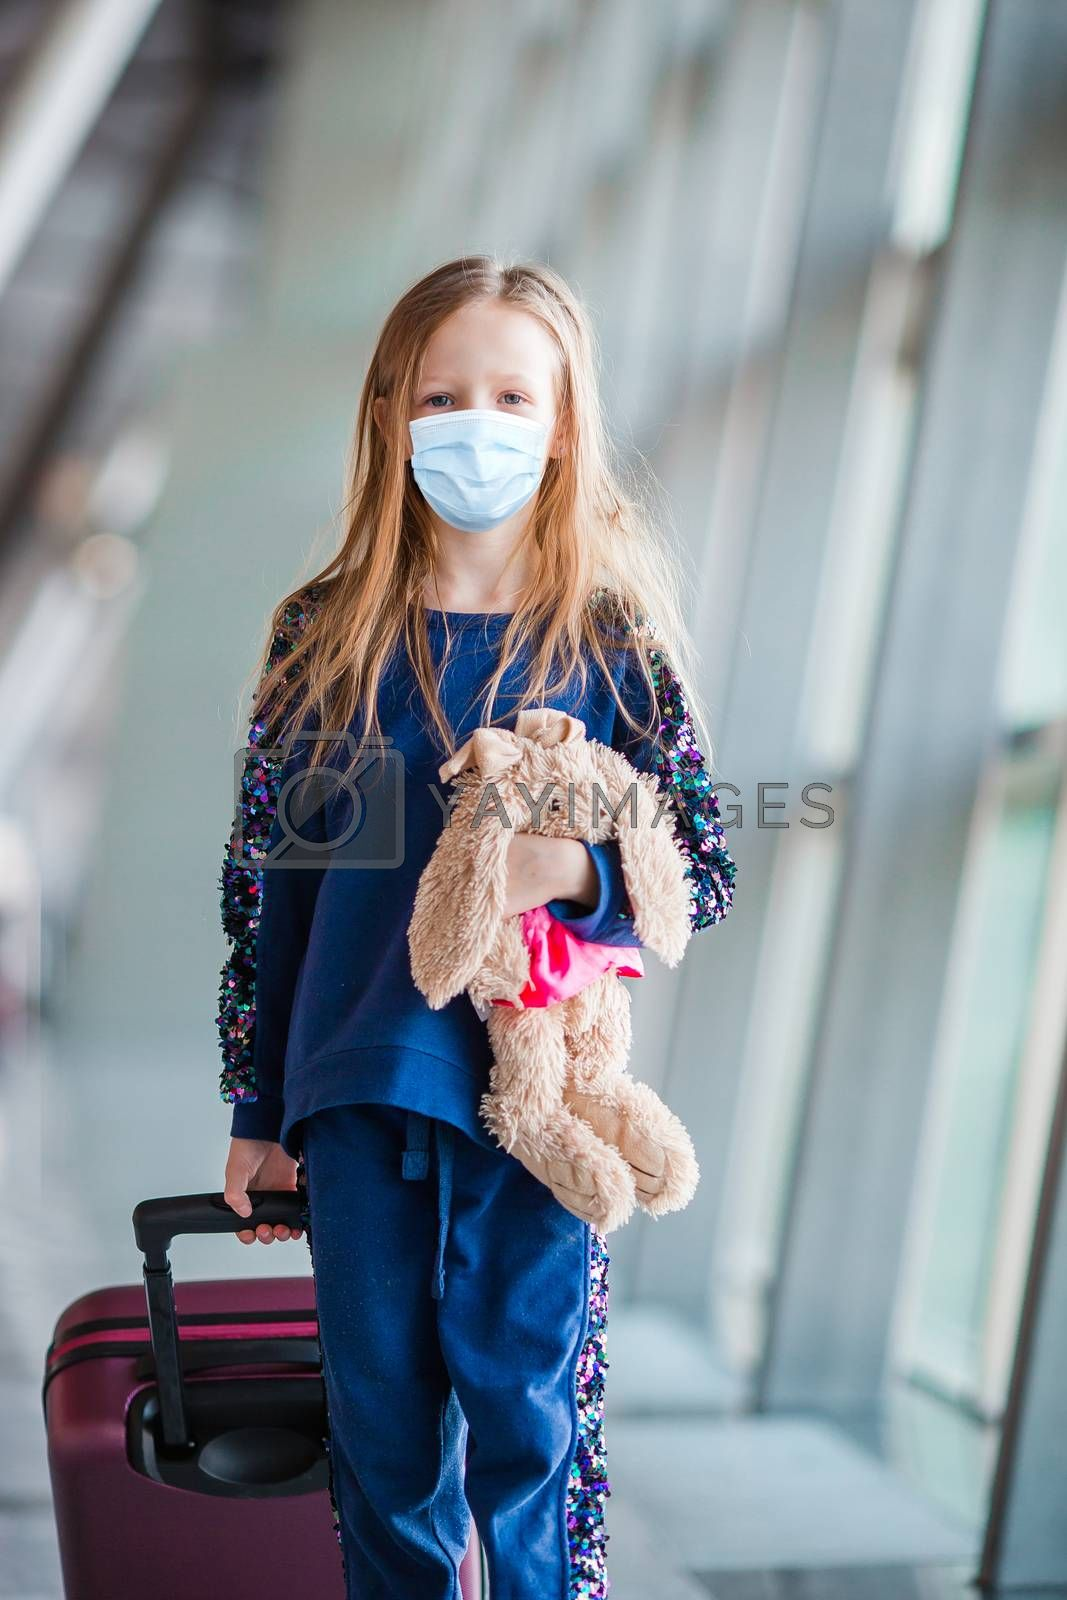 Little adorable kid with surgical mask face protection at international airport